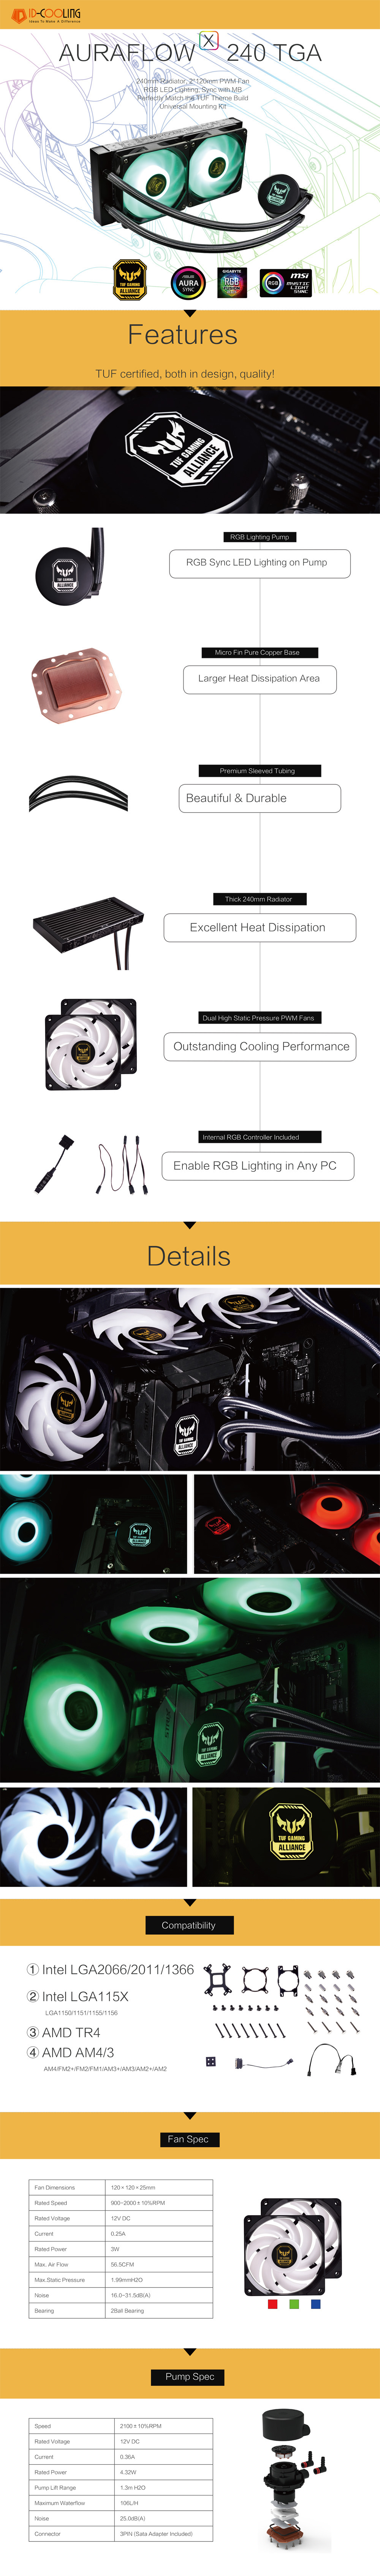 A large marketing image providing additional information about the product ID-COOLING AuraFlow X TUF Gaming Alliance 240 RGB AIO CPU Liquid Cooler - Additional alt info not provided